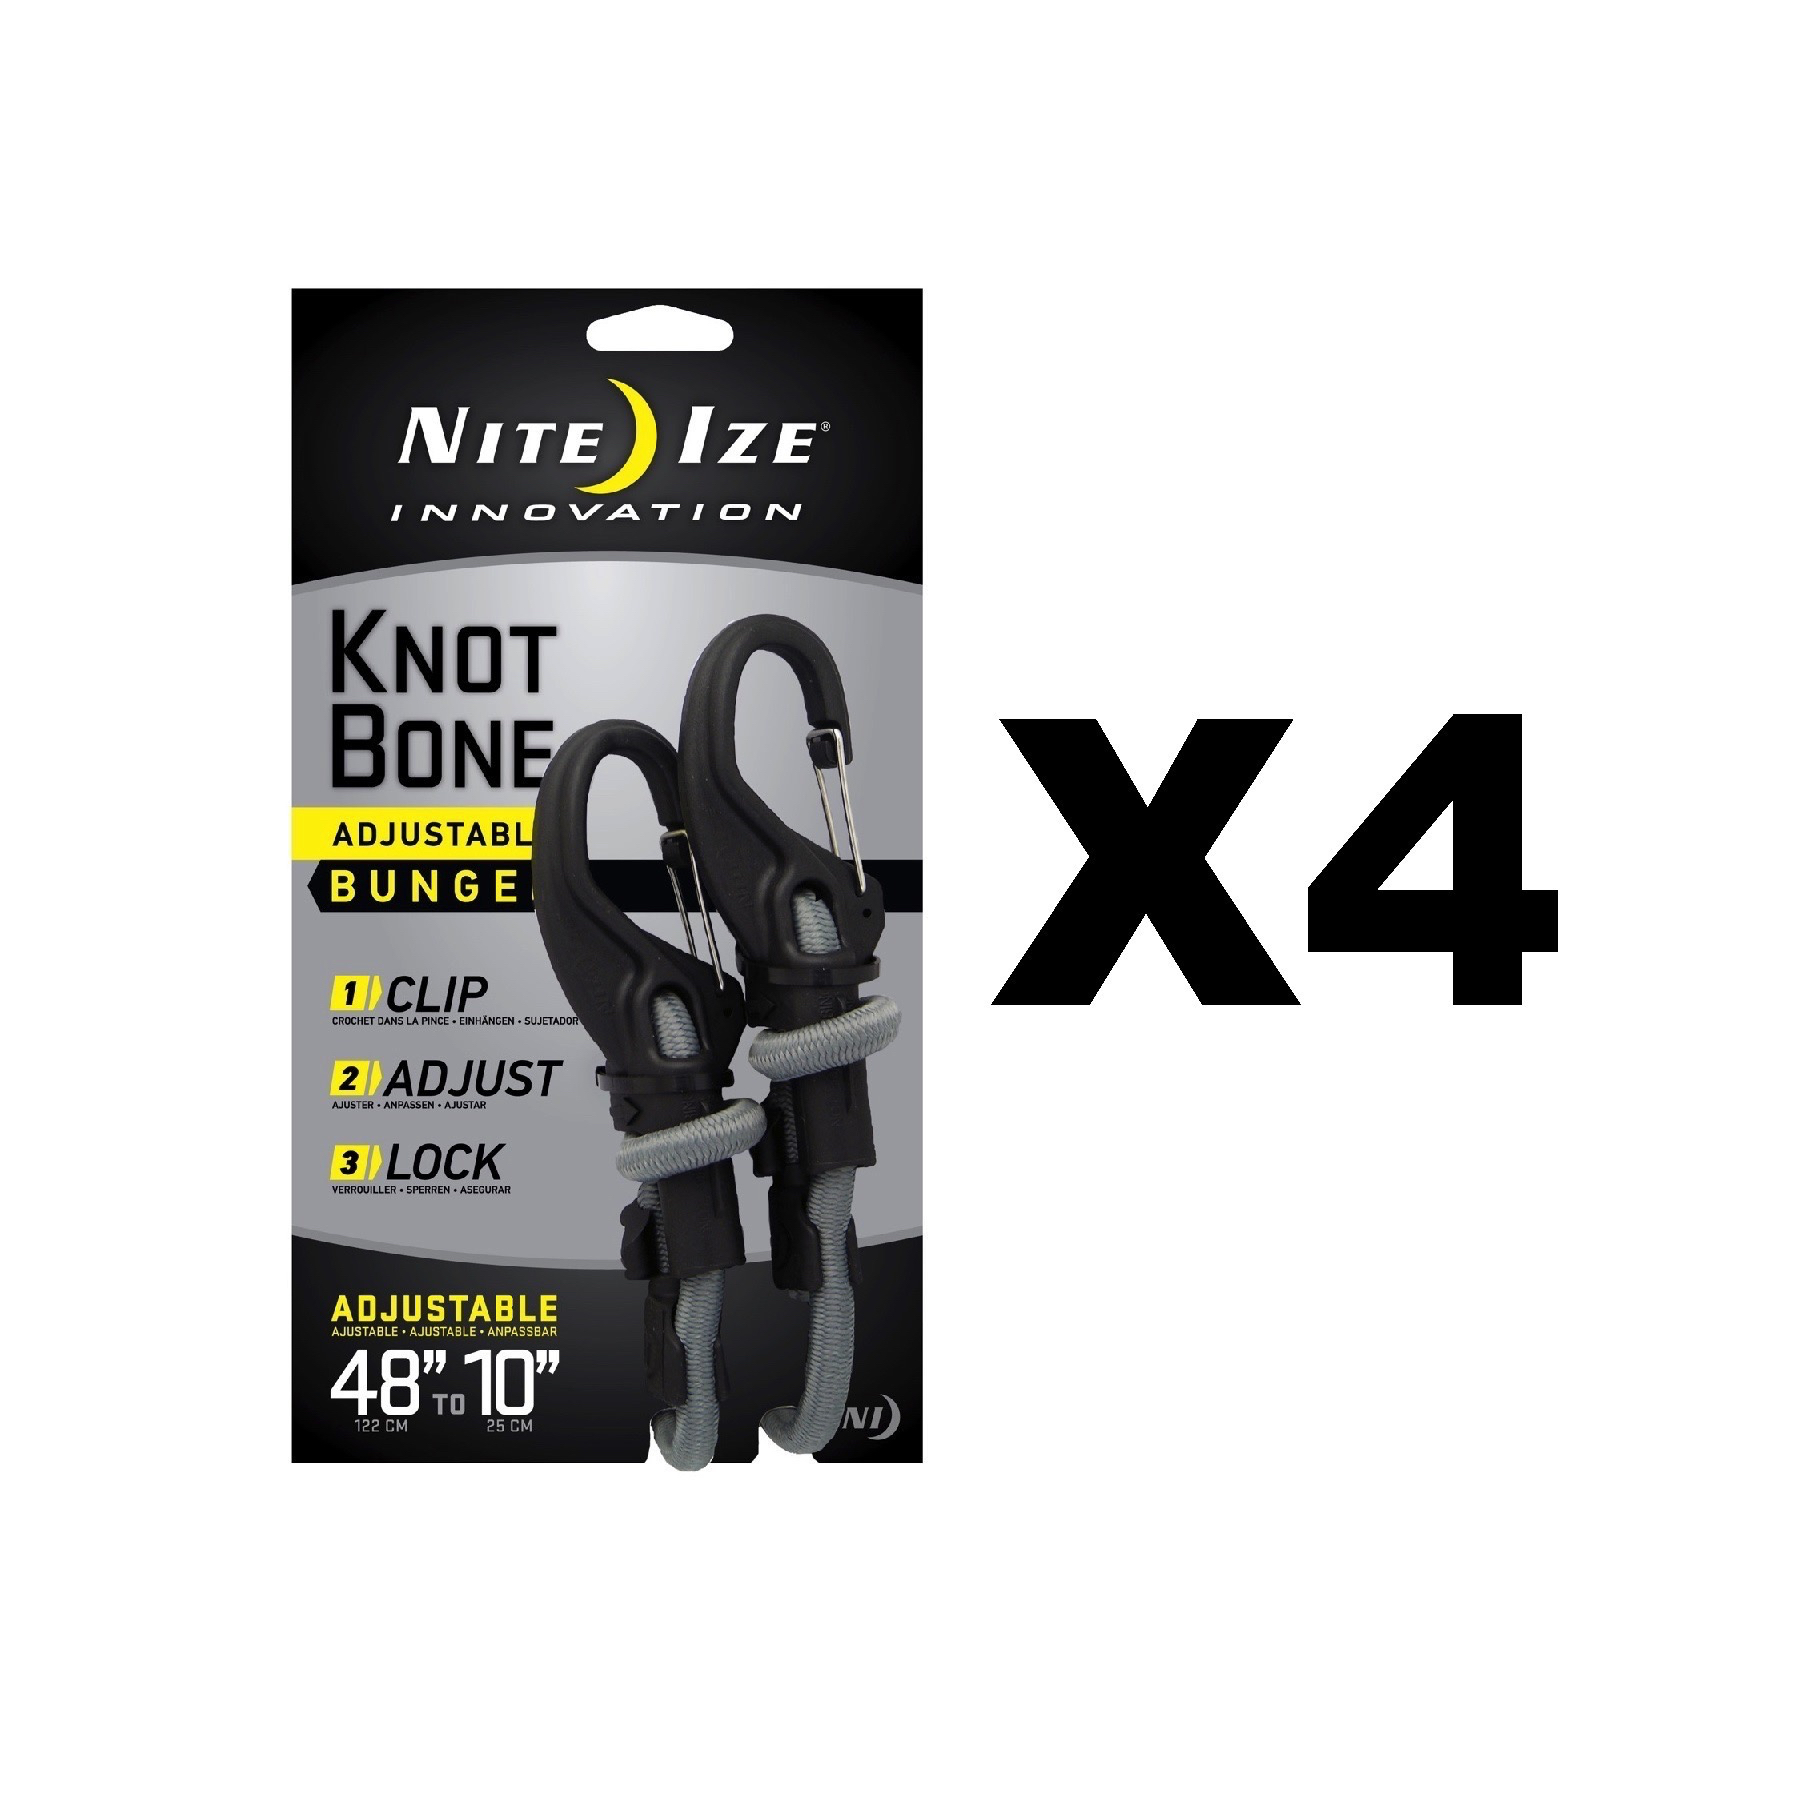 Nite Ize Large KnotBone Adjustable Bungee Cord Size #9 Bungee Cord With Carabiner Clip Ends Bungee Cord With Carabiner Clip Ends Adjustable Length 10-48 Adjustable Length 10-48 KBB9-03-01